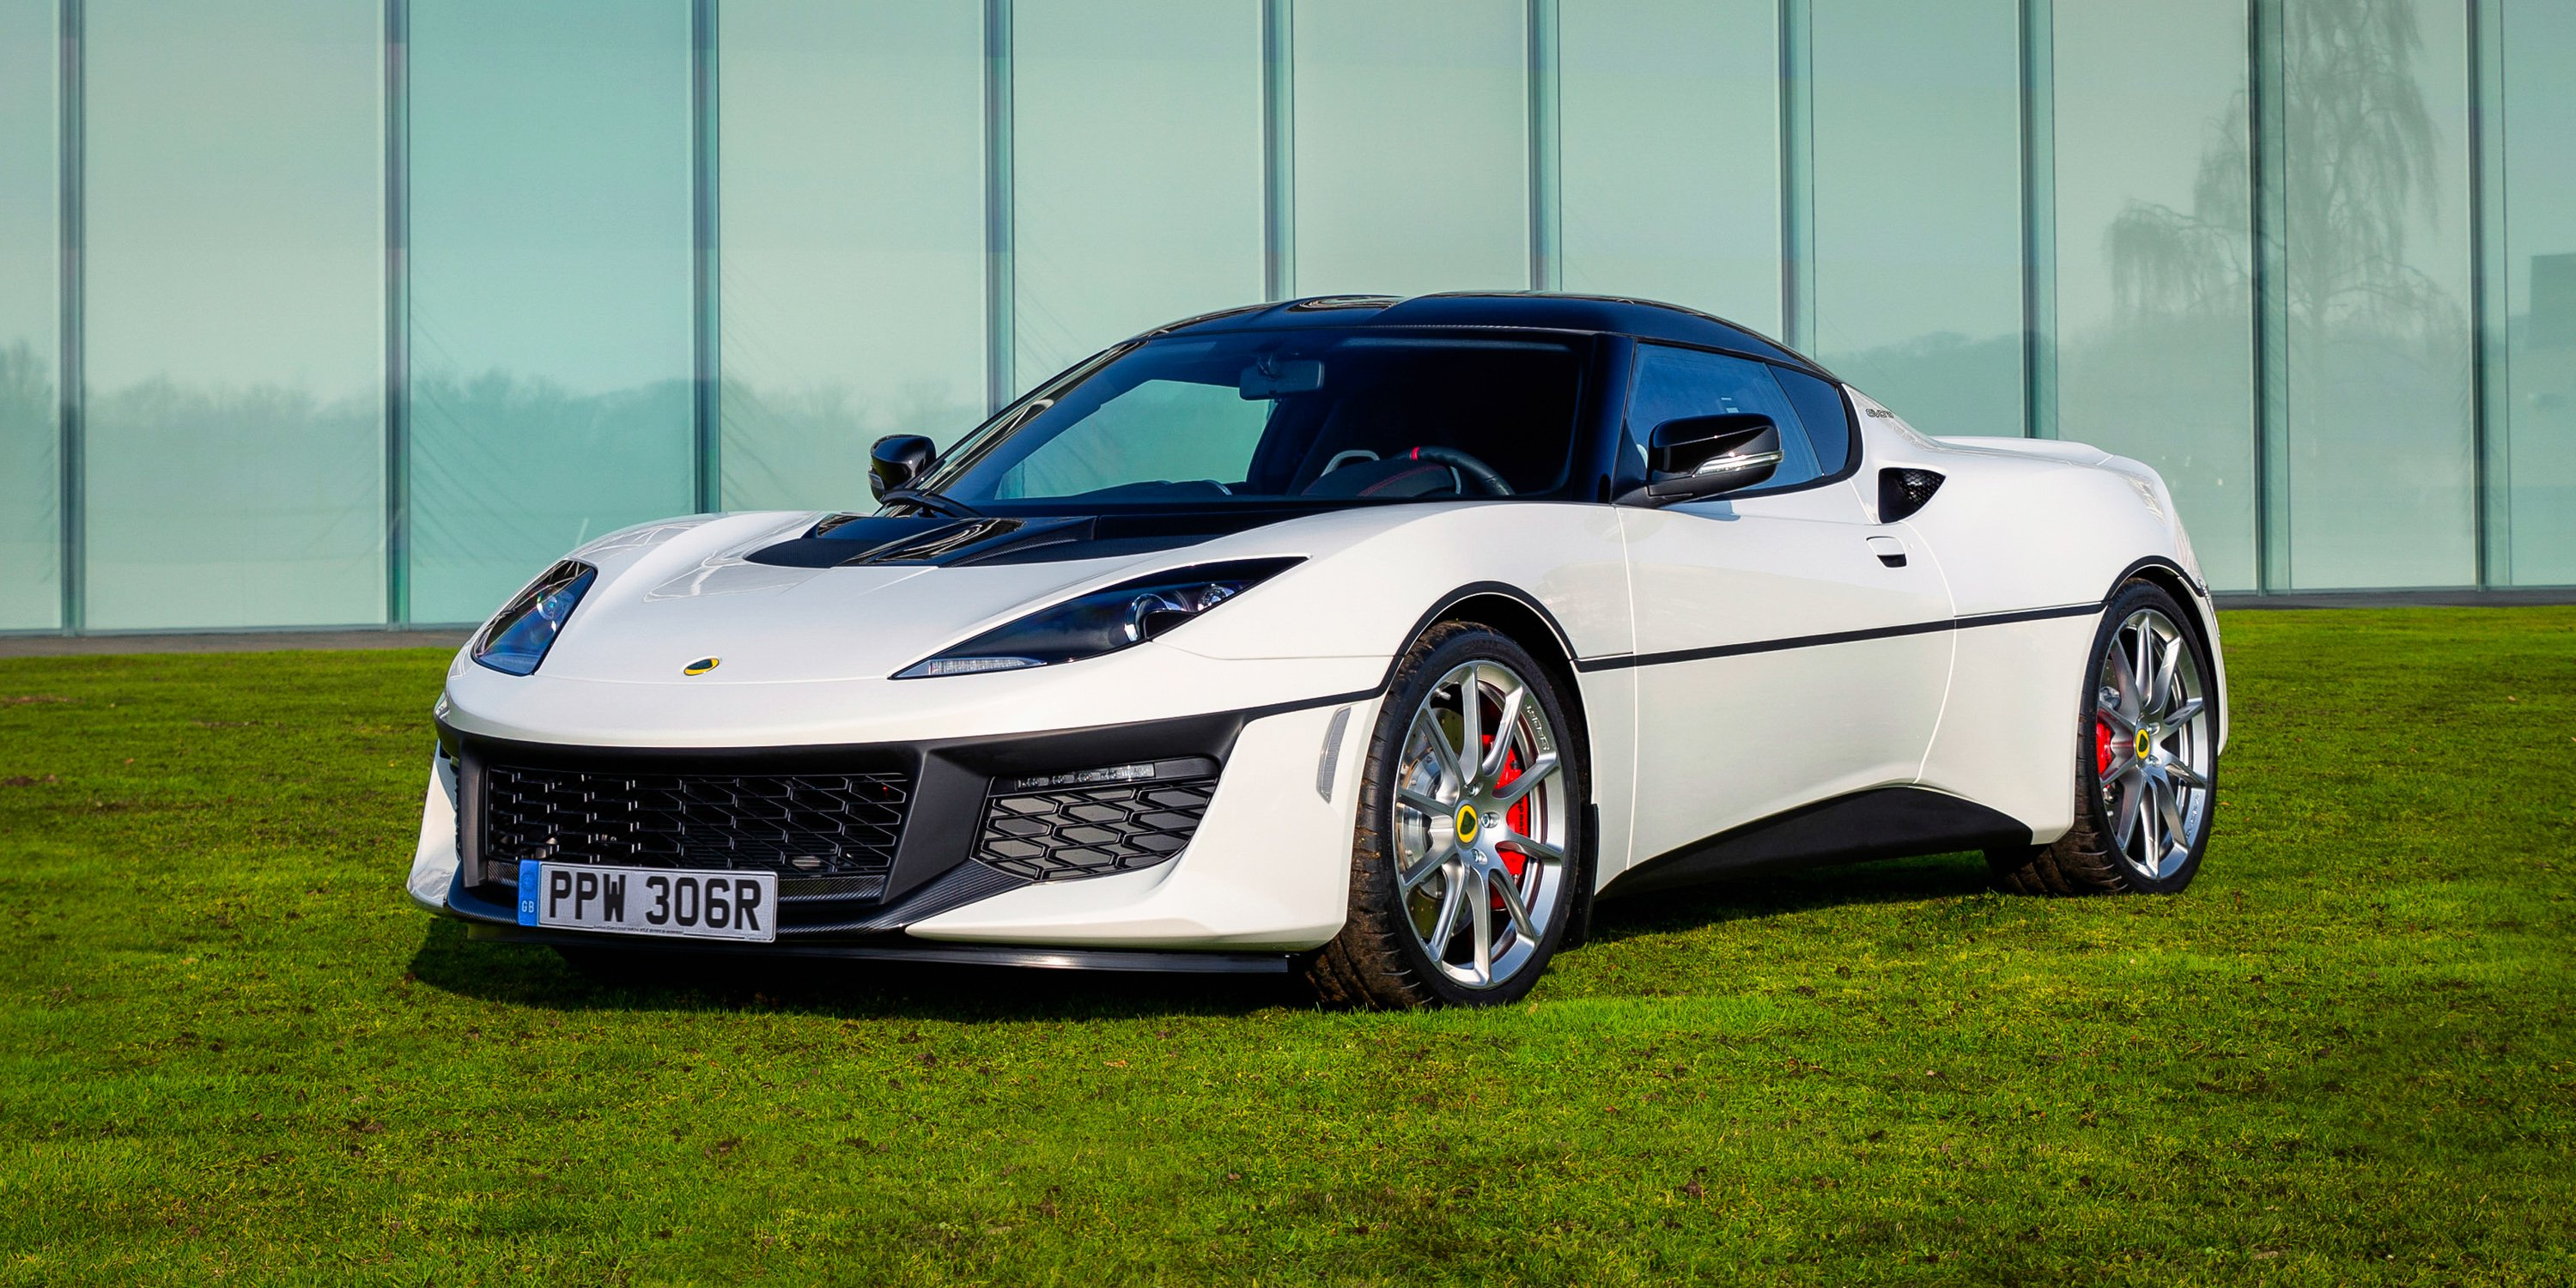 2017 Lotus Evora Sport 410 One Off Special Remembers Iconic James Bond Esprit S1 Photos